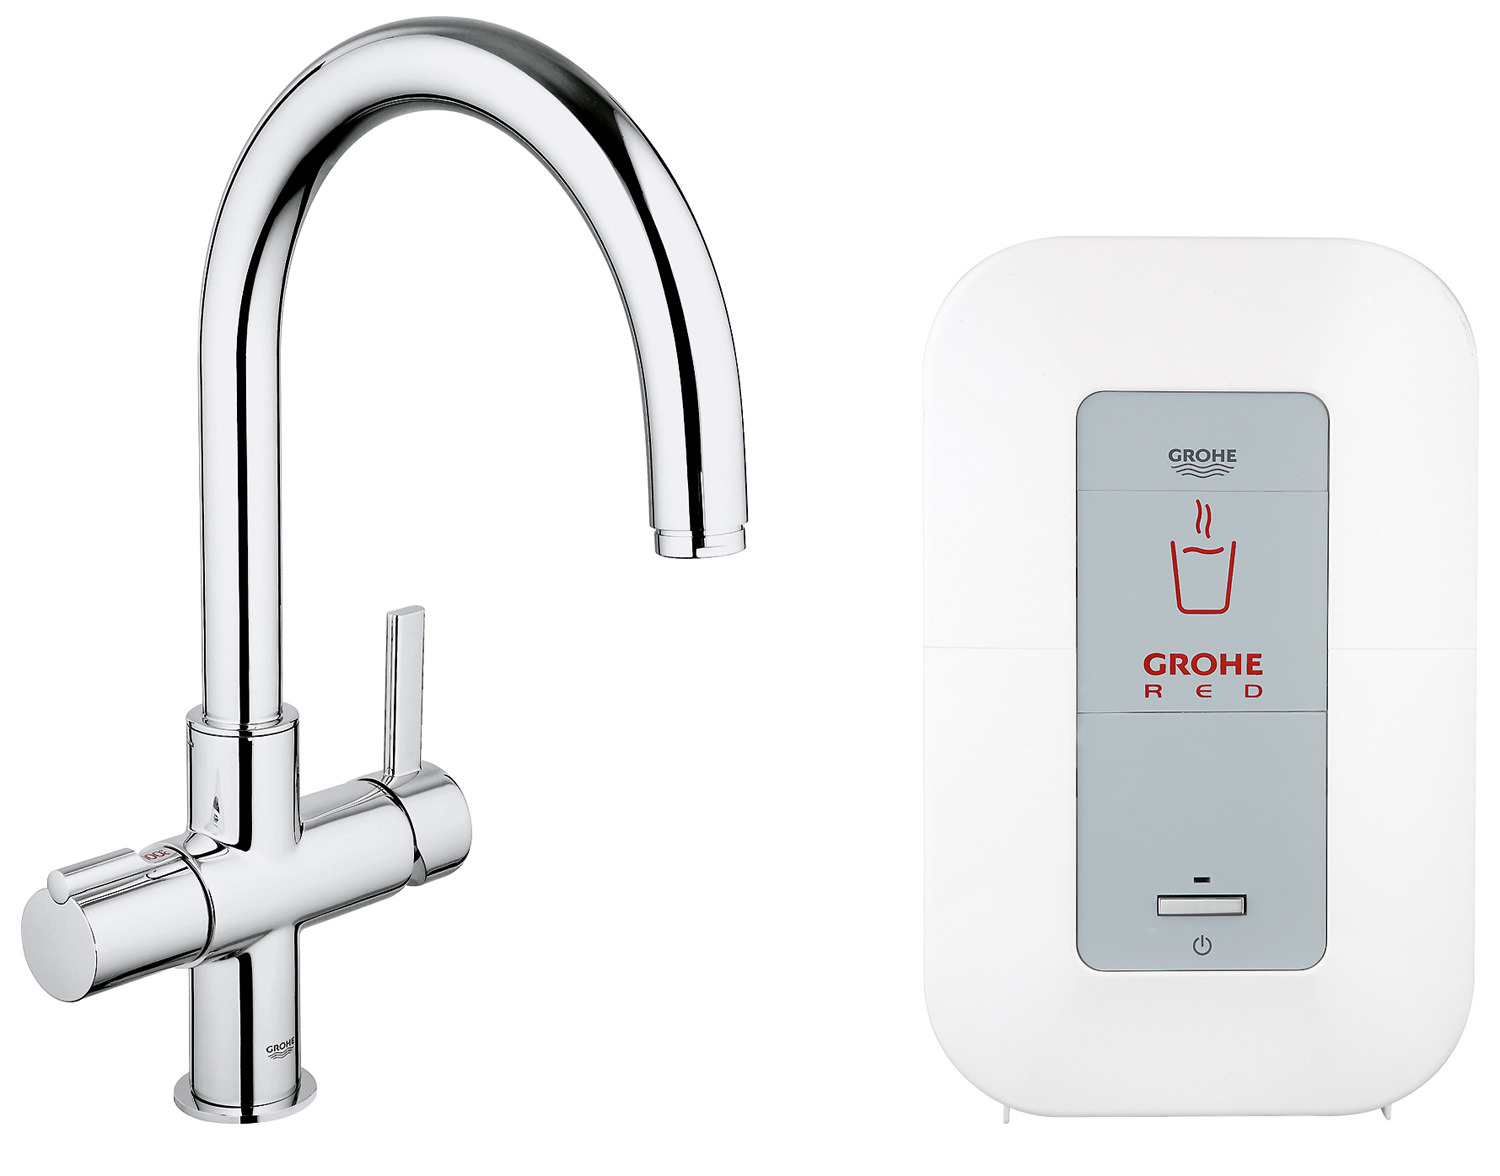 grohe red duo chrome c spout faucet and single boiler 4 litres. Black Bedroom Furniture Sets. Home Design Ideas